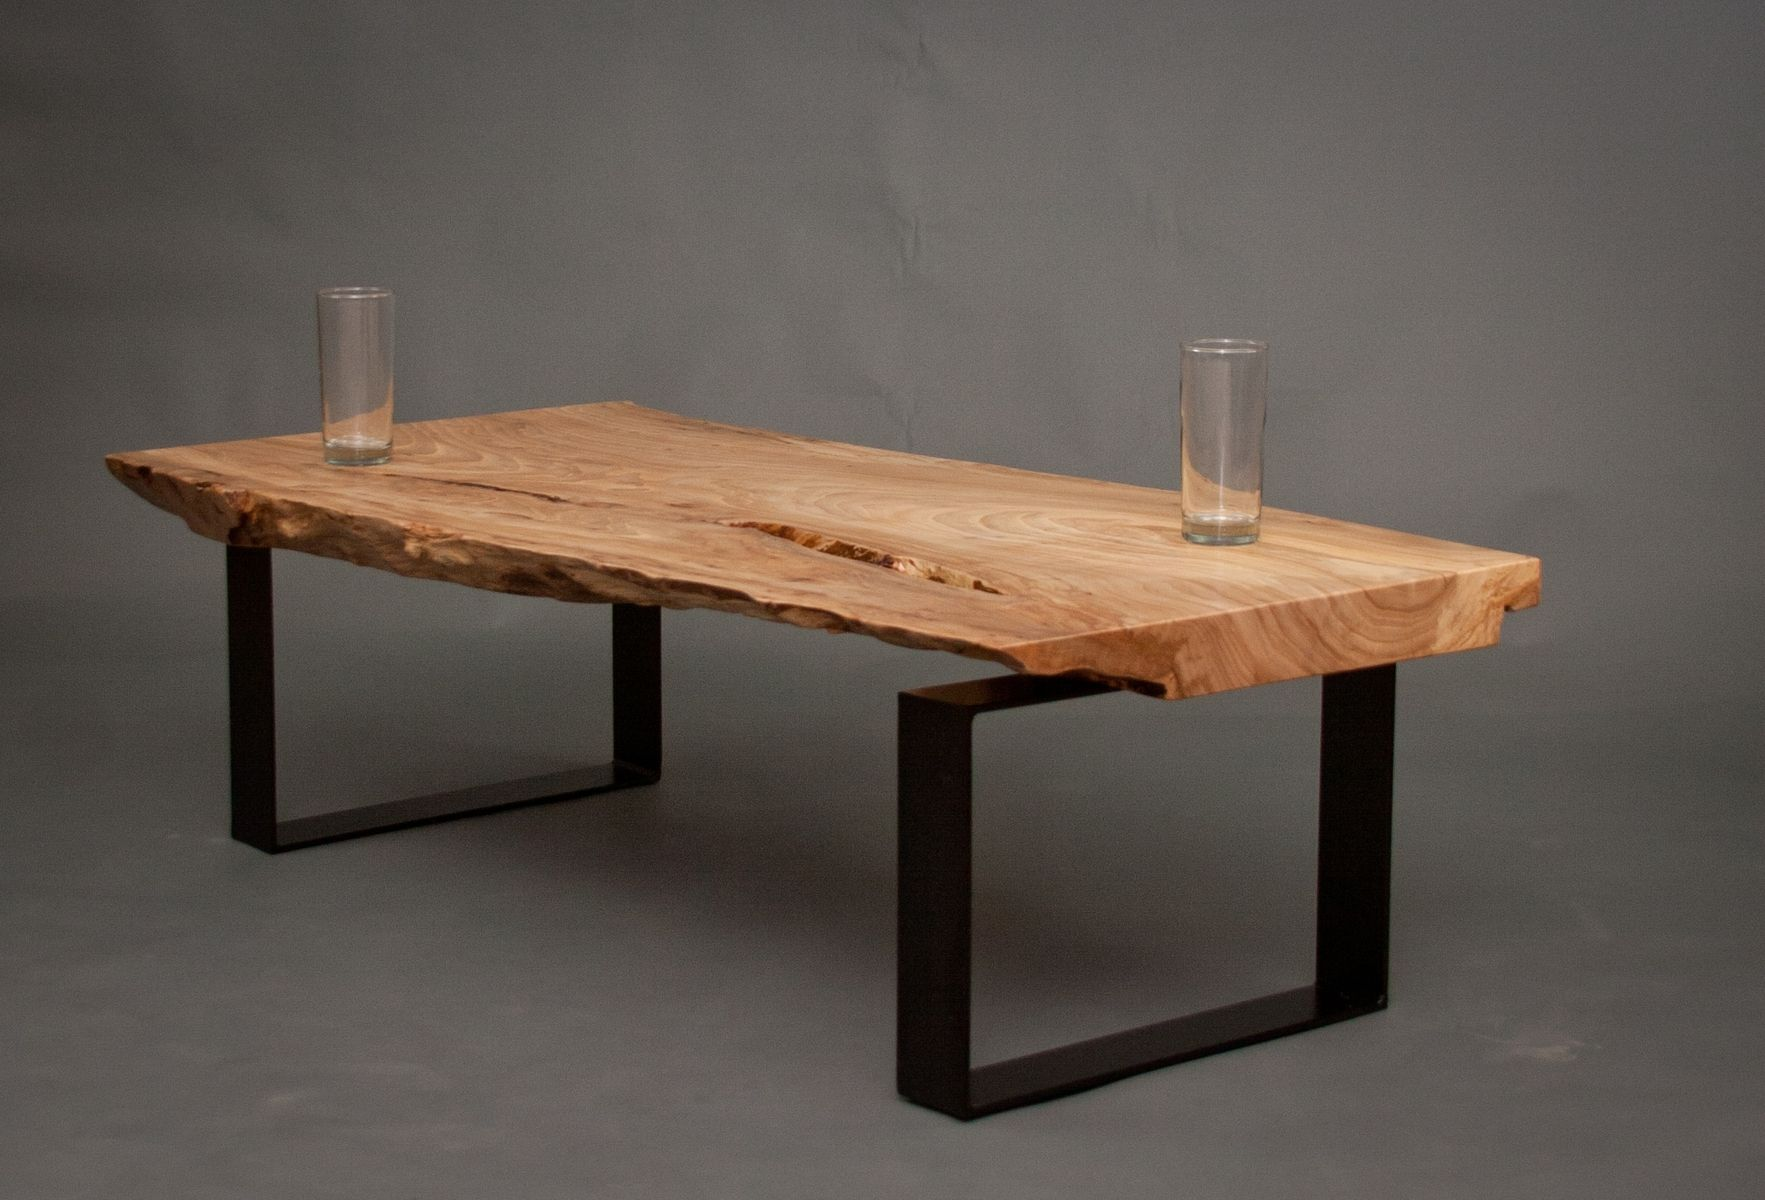 wooden coffee tables. ellington - reclaimed elm wood coffee table by blake paine wooden tables